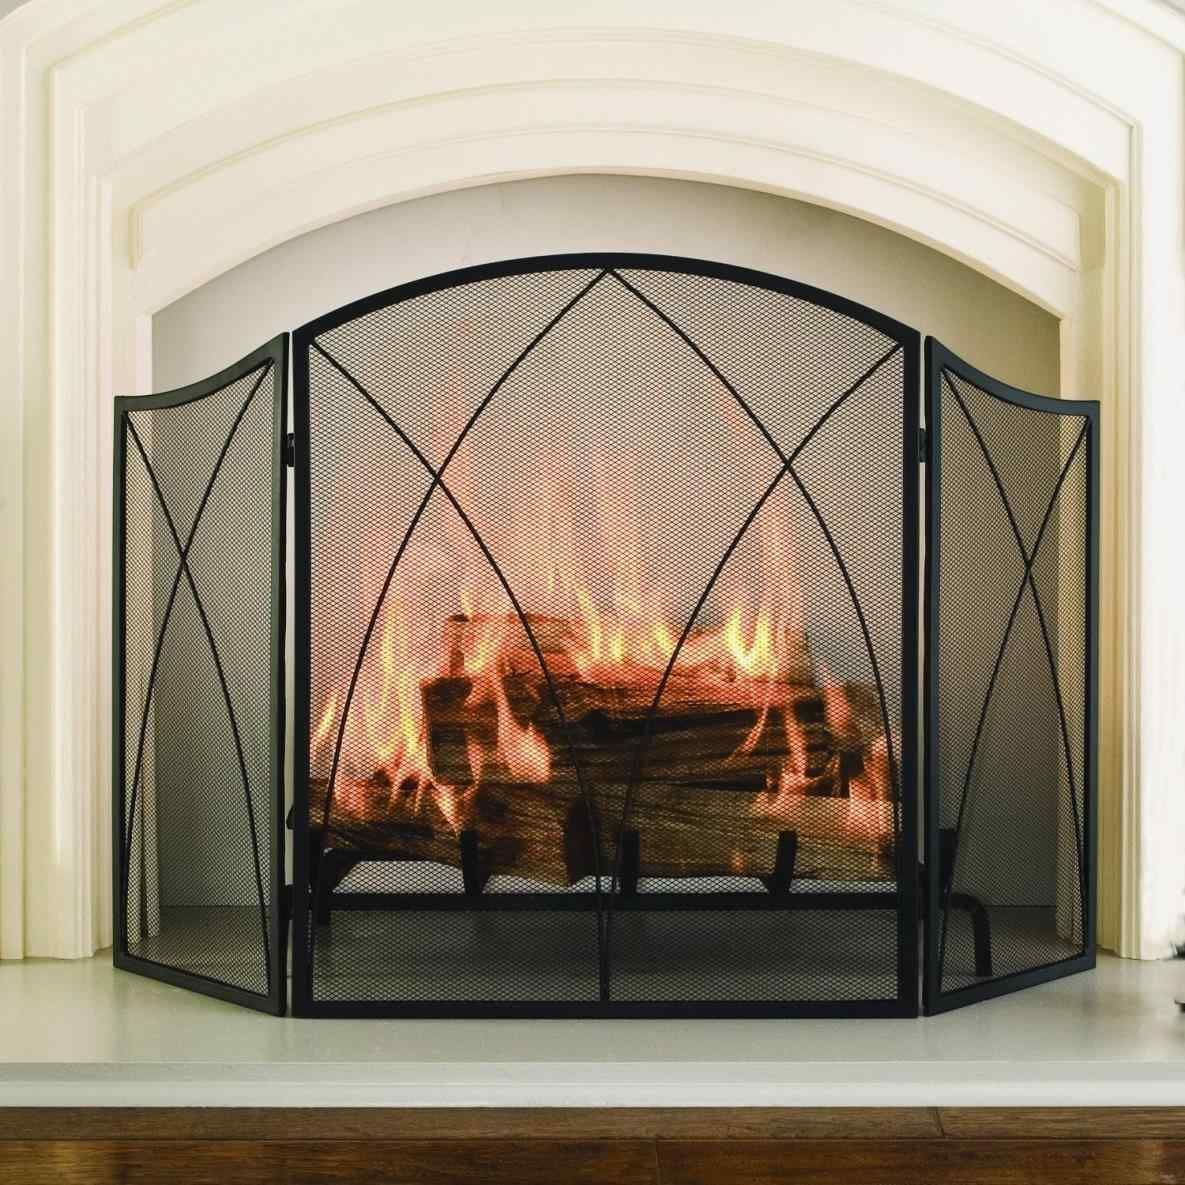 Unique Fireplace tools Beautiful 11 Best Fancy Fireplace Screens Design and Decor Ideas